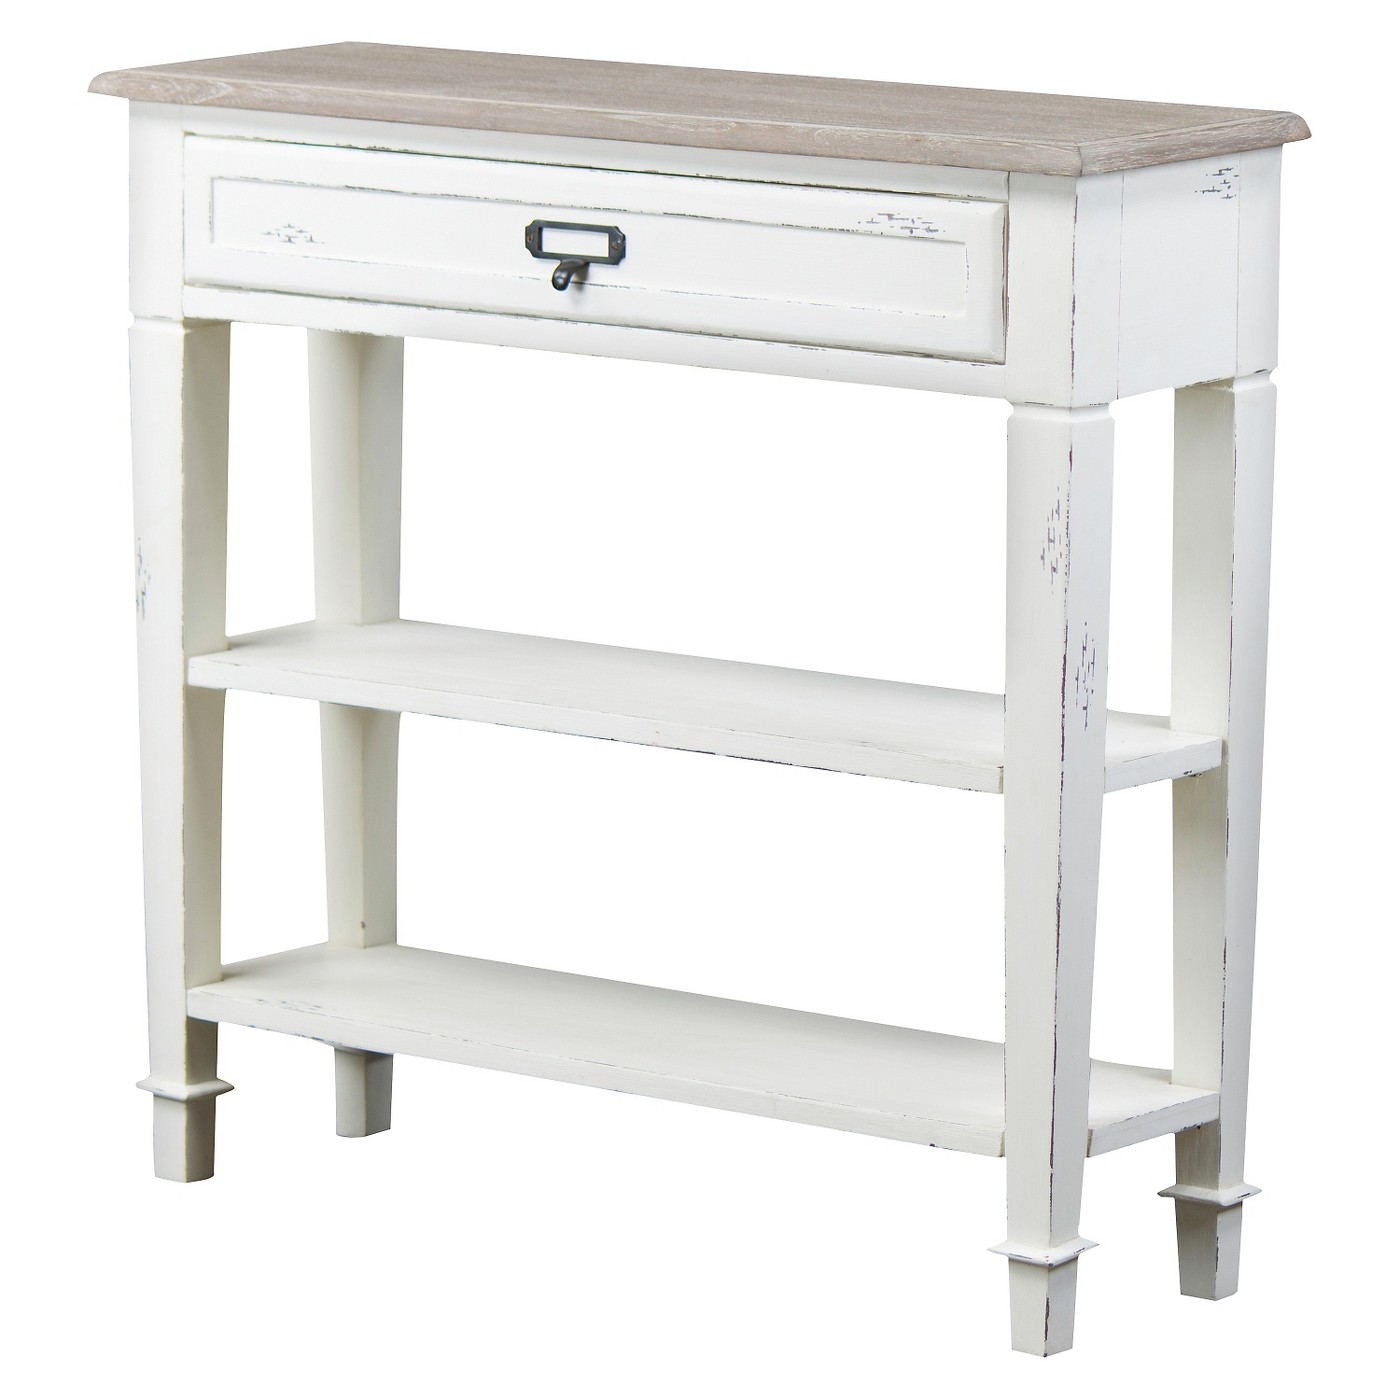 Dauphine Traditional French Accent Console Table 1 Drawer - Baxton Studio - image 1 of 6